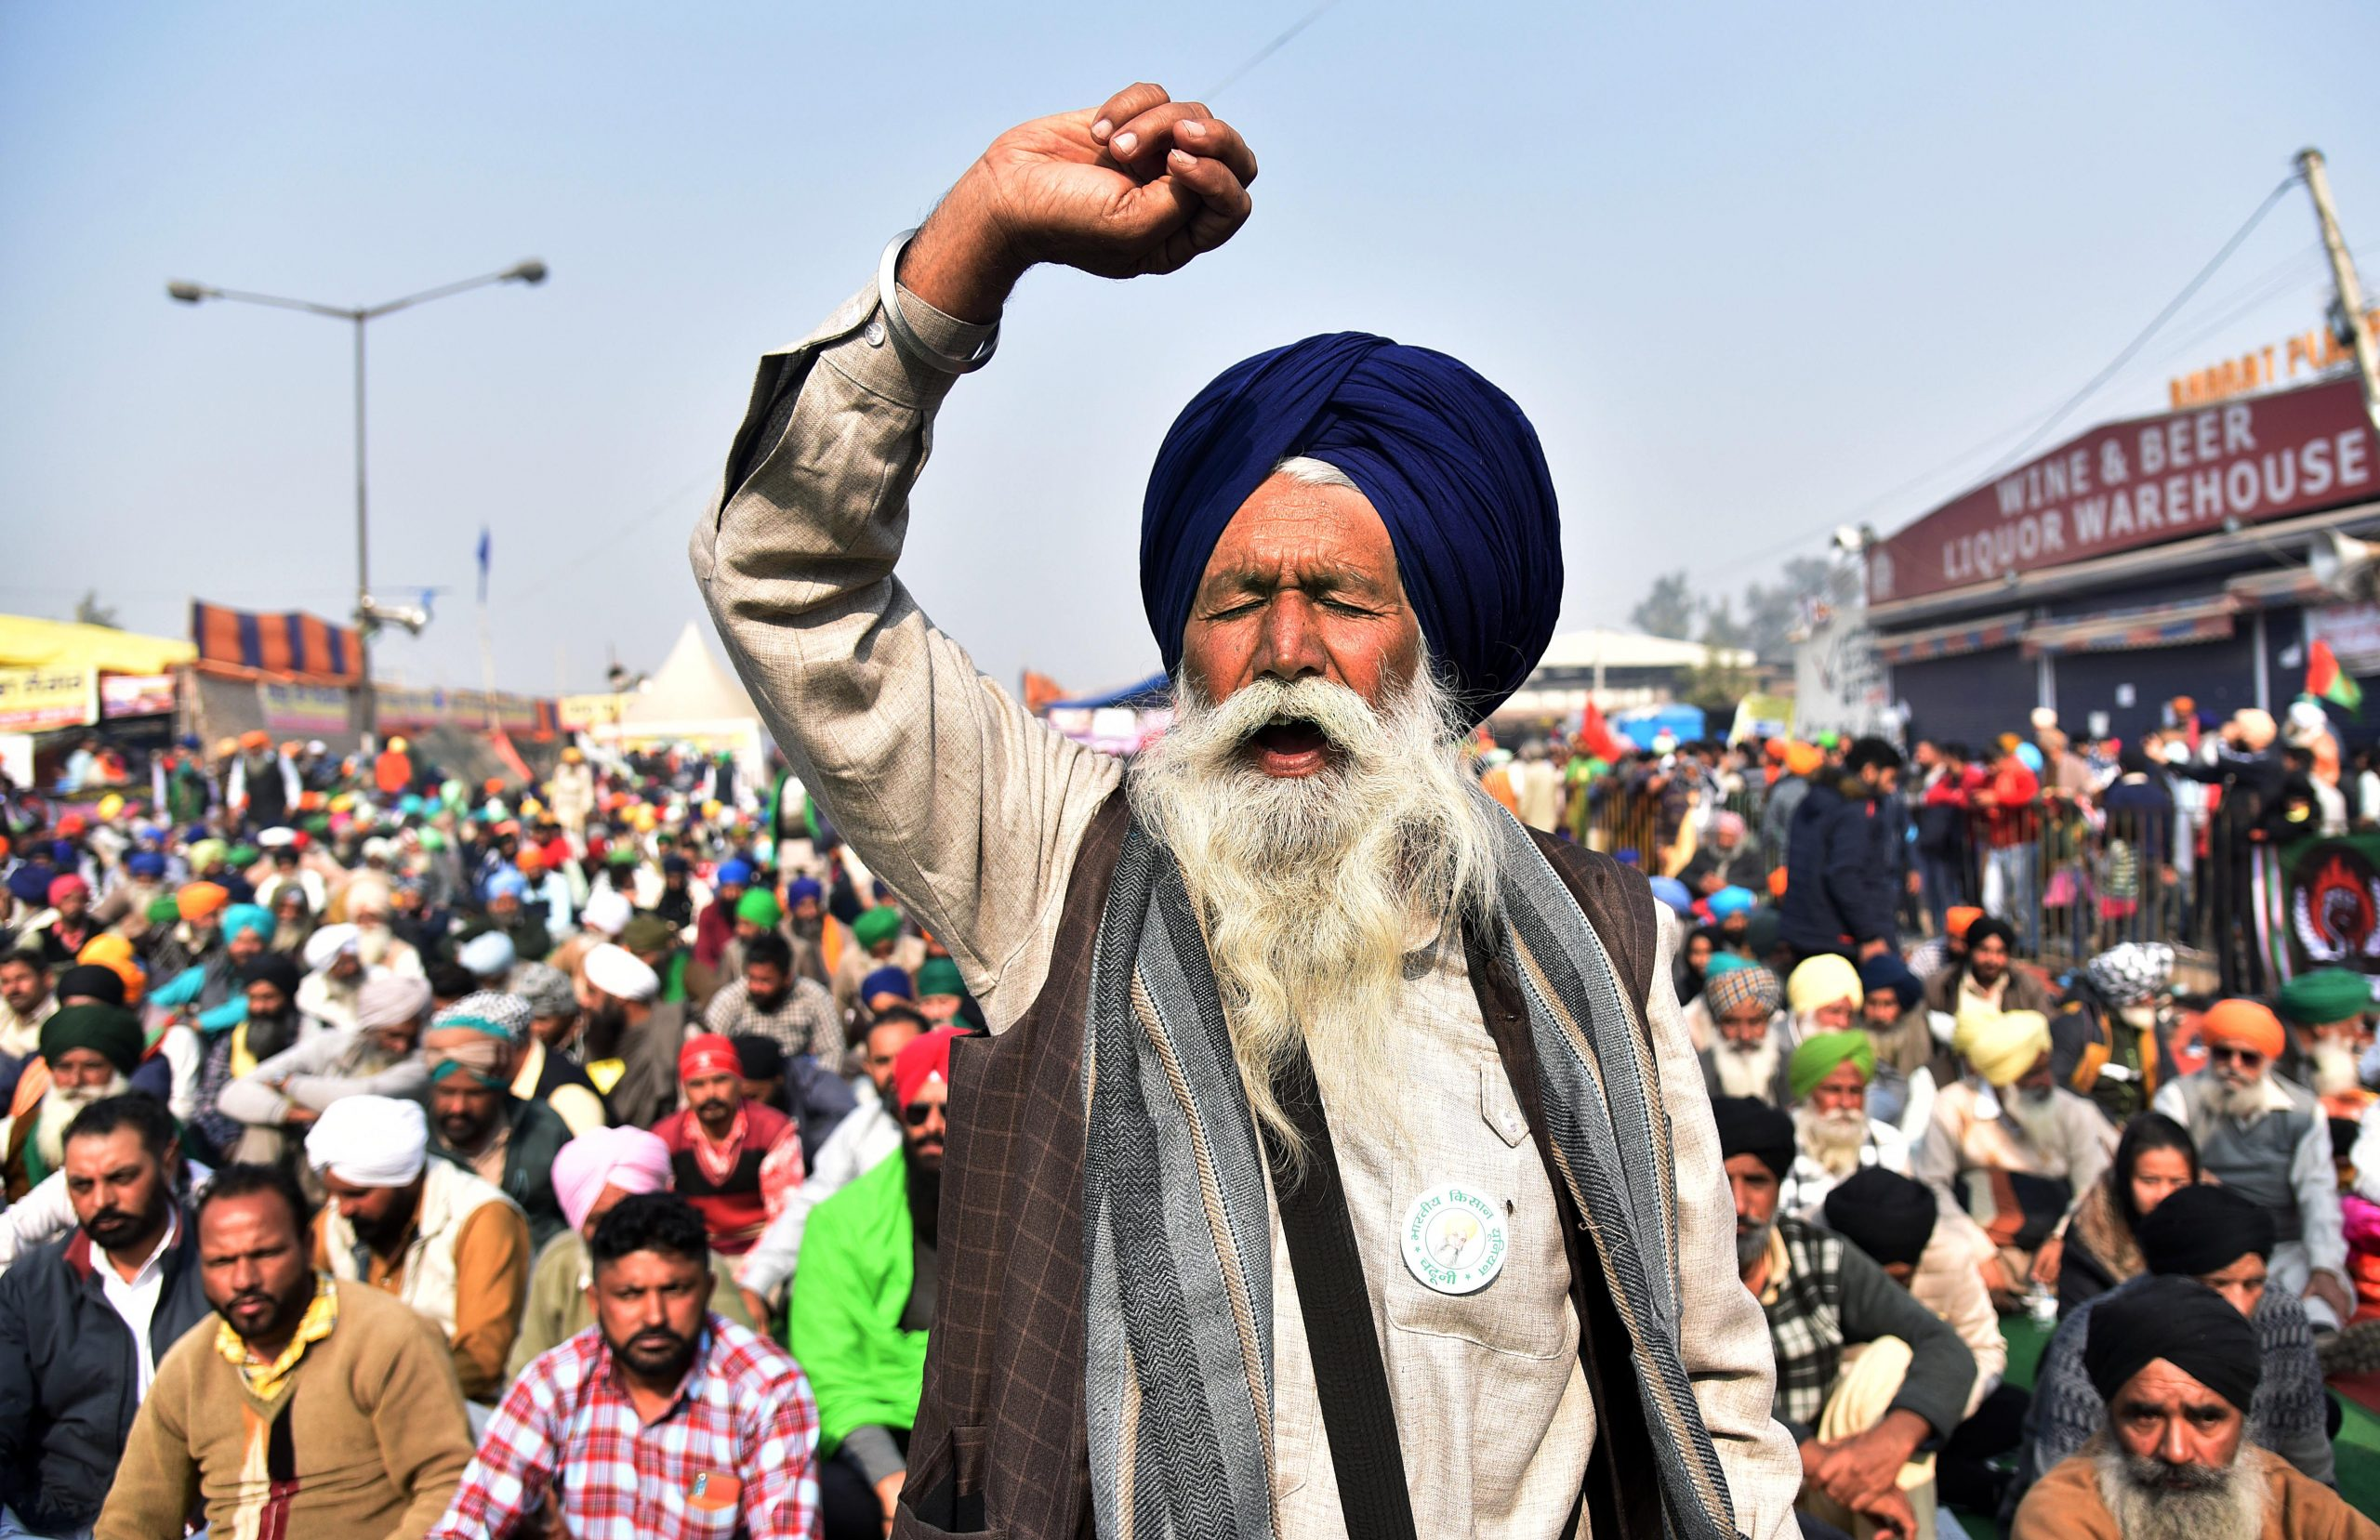 LIVE: Farmers' yell continues amid freezing temperatures in Delhi-NCR